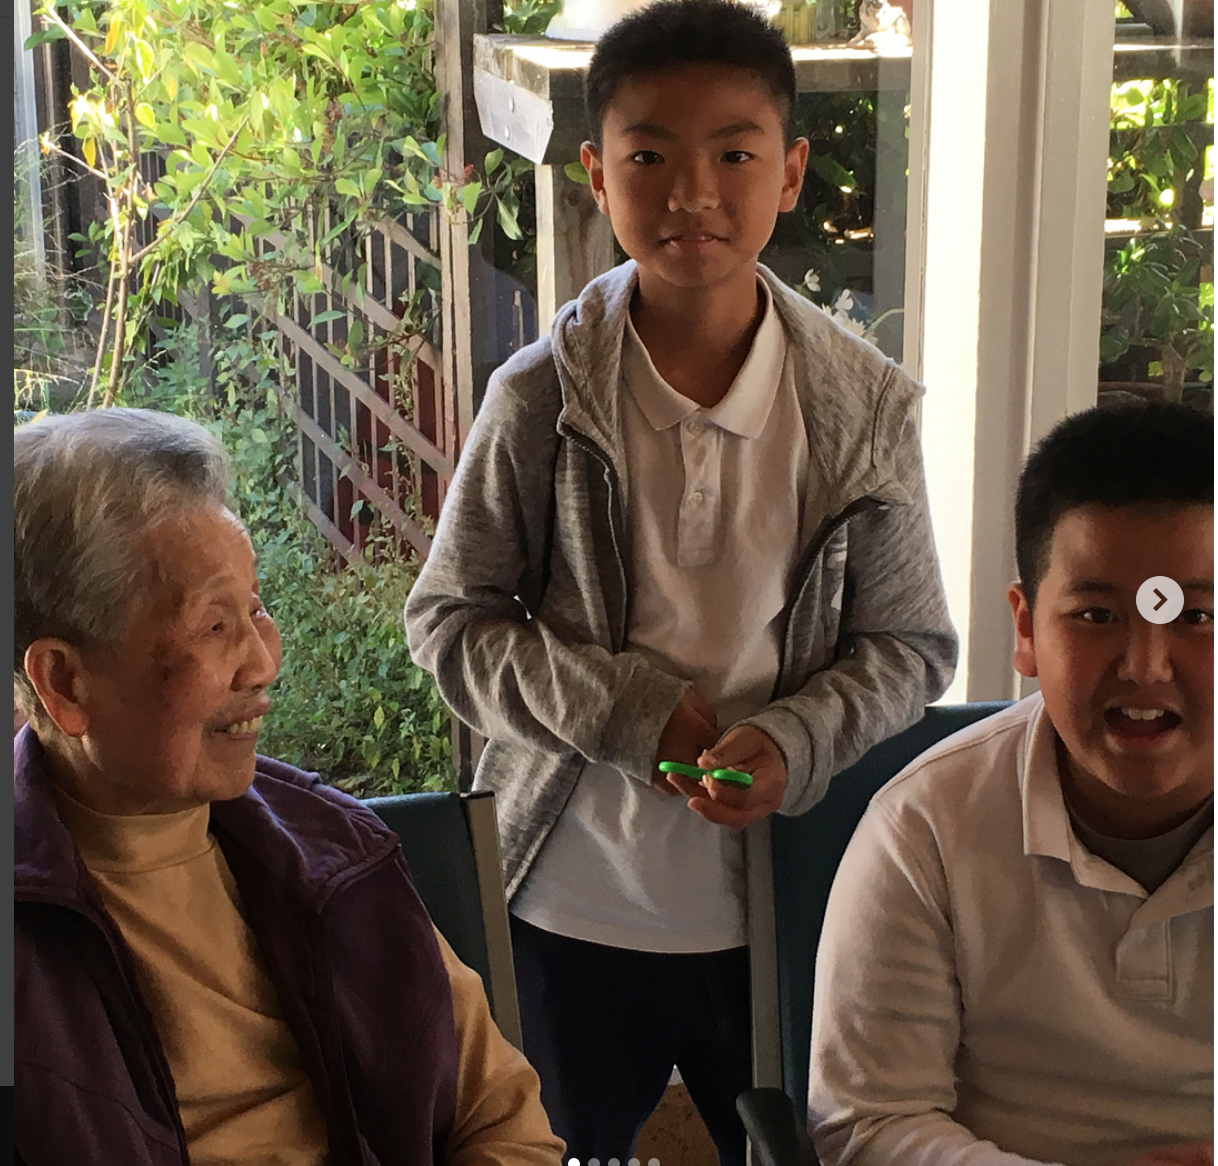 Moscone Elementary students spend time with senior citizens reading and playing games together and discussing the similarities and differences between their generations.